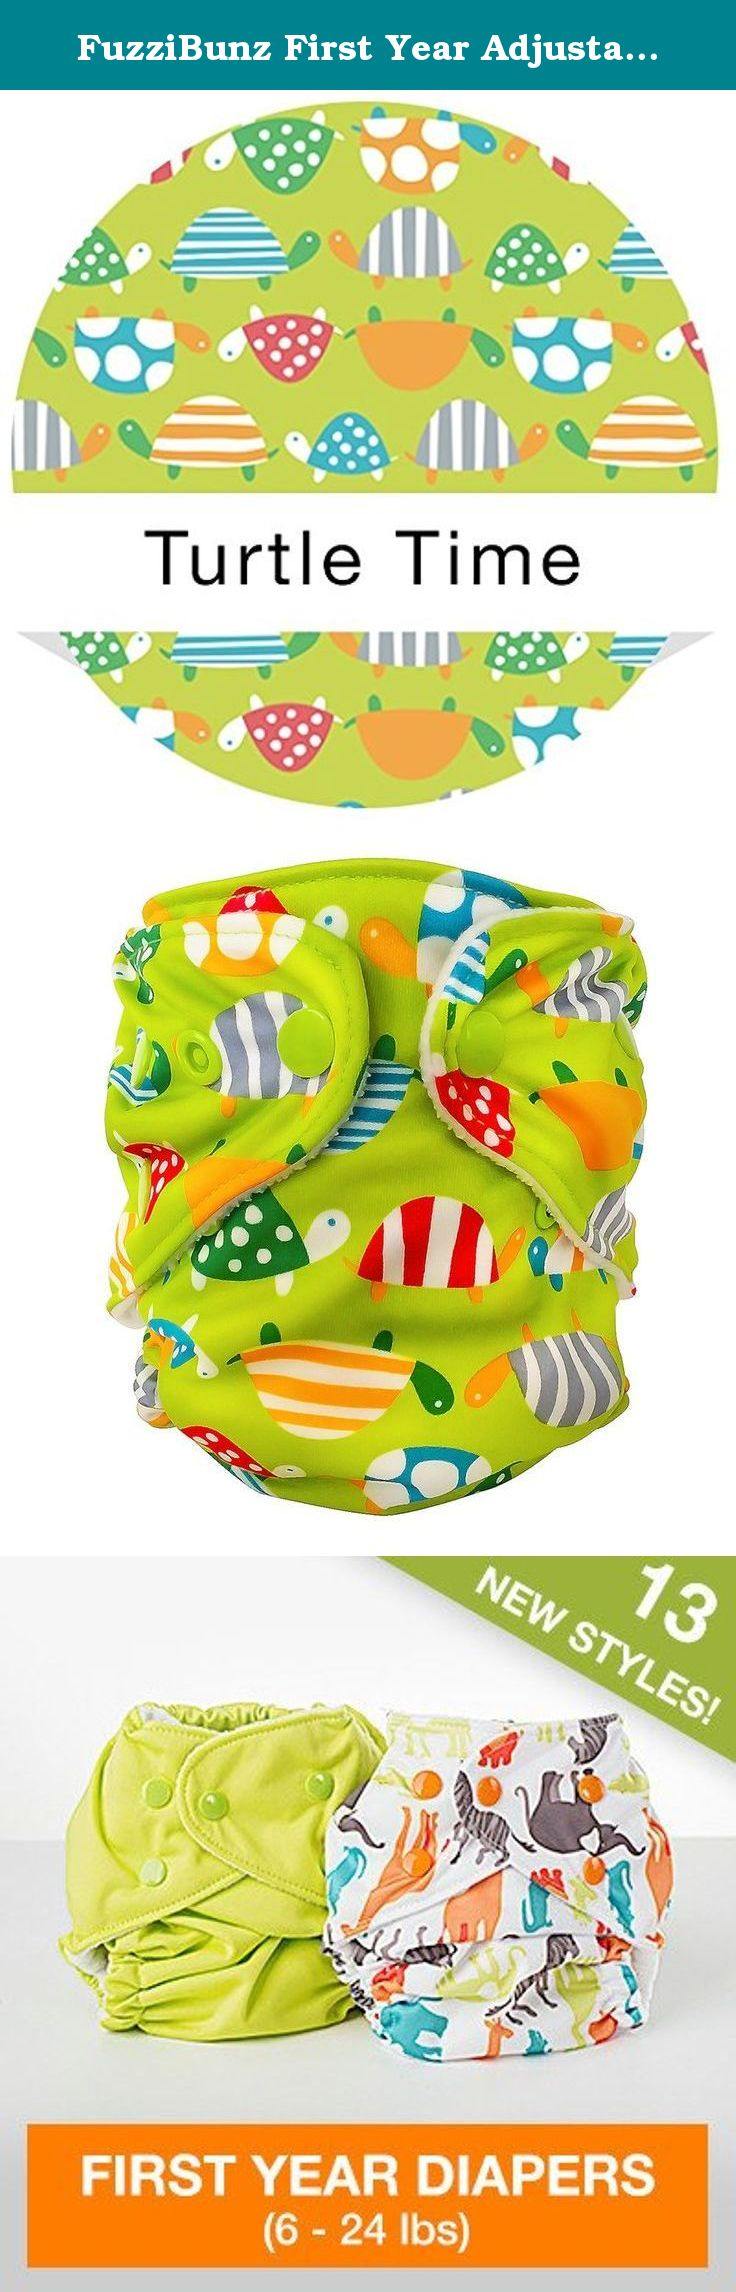 FuzziBunz First Year Adjustable Diaper, Turtle time, 6-24 Pound. Bridges the gap between the tiny newborn stage and the time when a baby can actually fits into a one size adjustable or perfect size medium/large diaper. Up to 30 plus adjustment settings: waist, rear, rise. Replaceable button-holed elastic to achieve perfect fits as your baby grows.